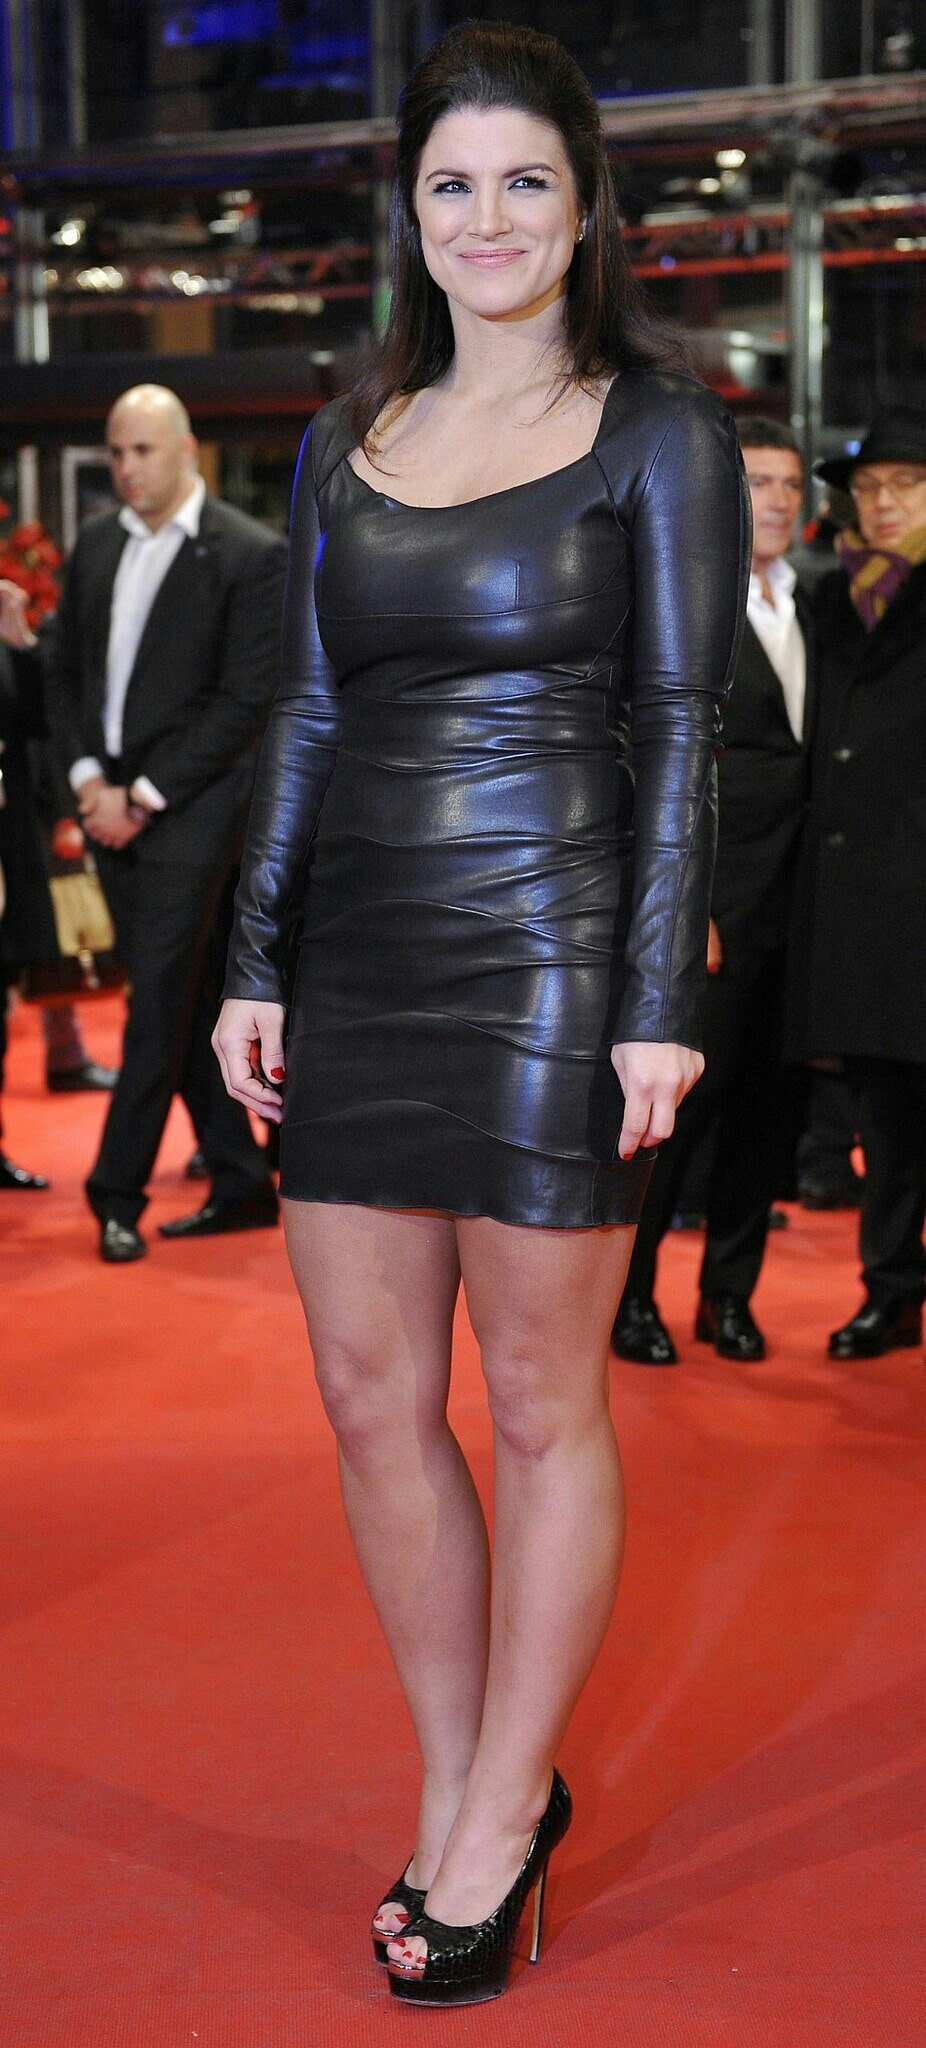 49 Sexy Gina Carano Feet Pictures Are Really Mesmerising